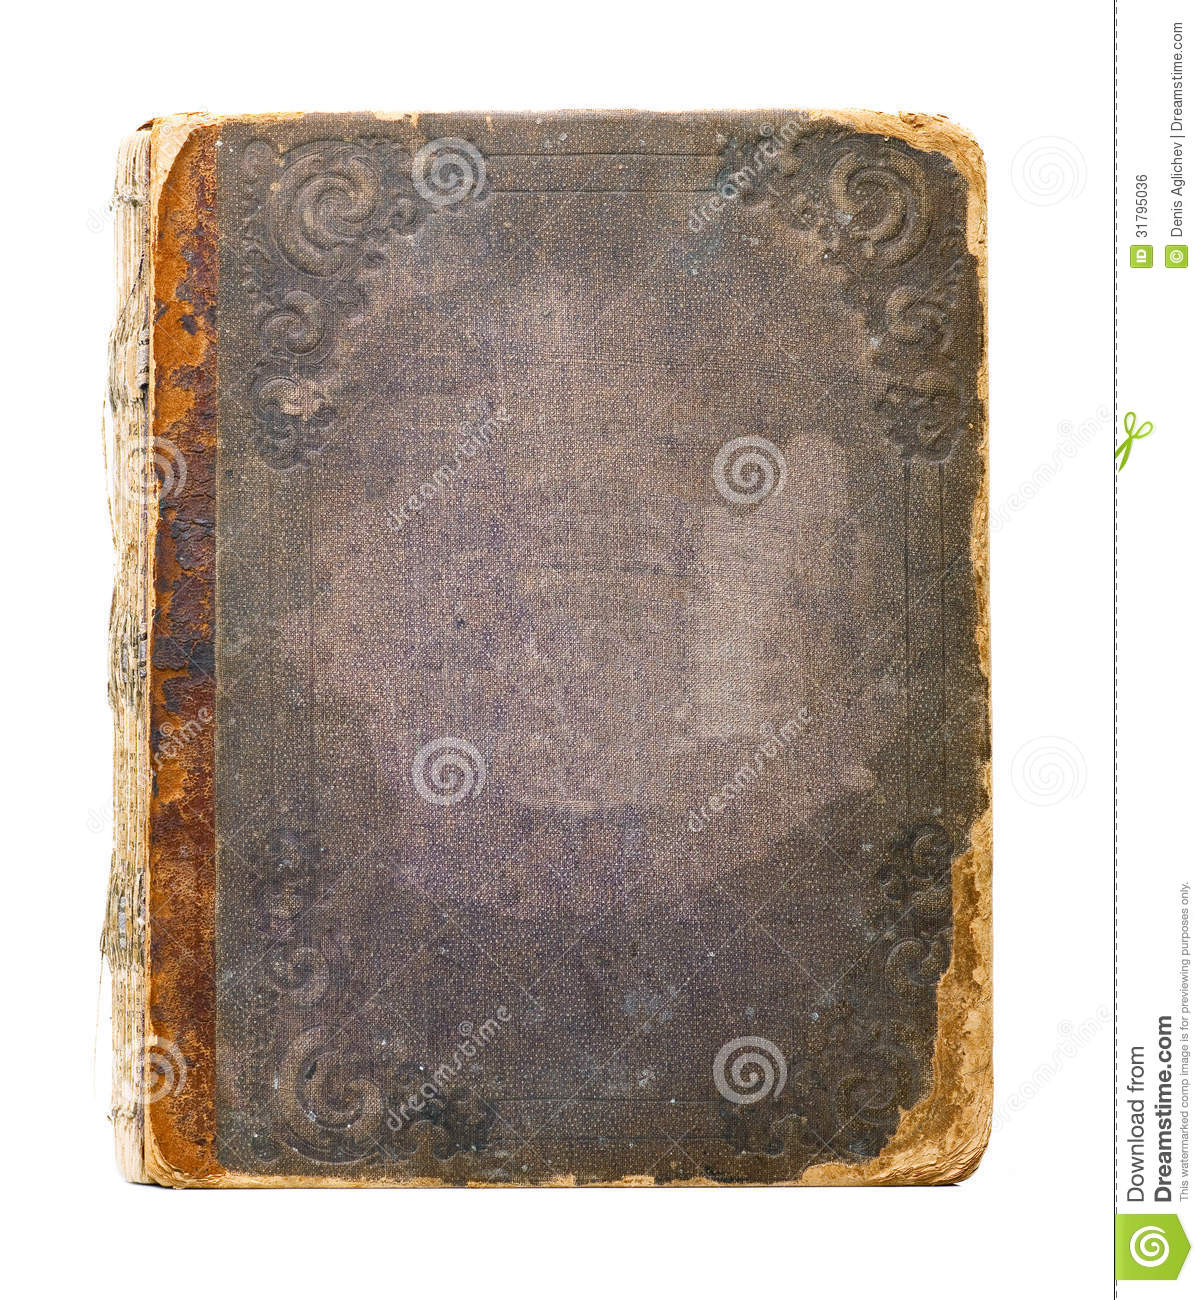 Book Cover White Background : Old book royalty free stock image